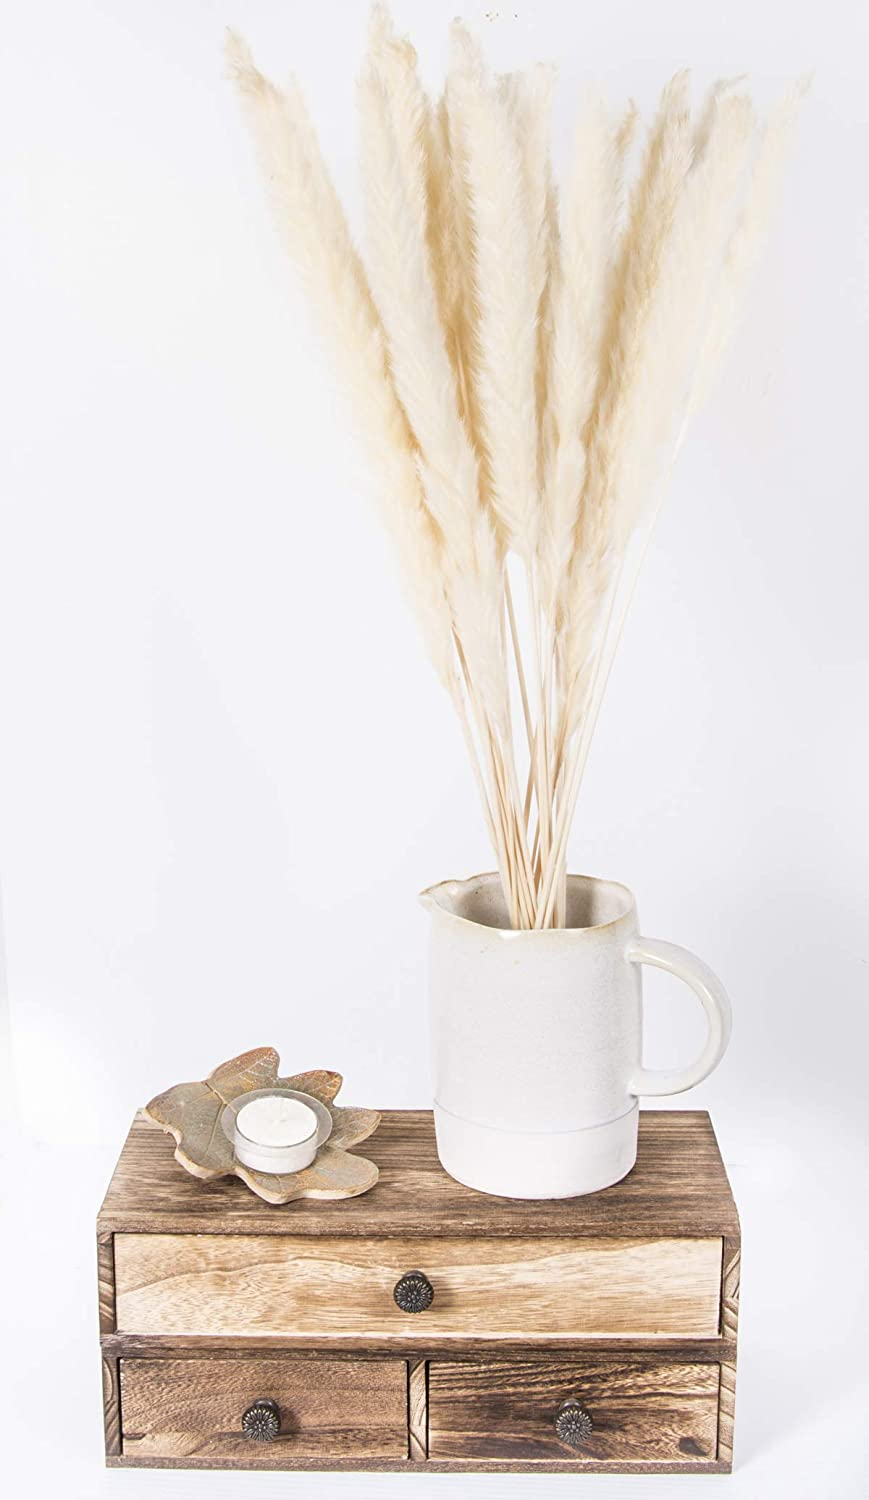 "Shanksie Dried Pampas Grass Decor - White Pampas Grass - 47cm(18"") - 20 Pieces - Perfect for Flower Arrangements, Home Decoration, Weddings or Parties (White)"